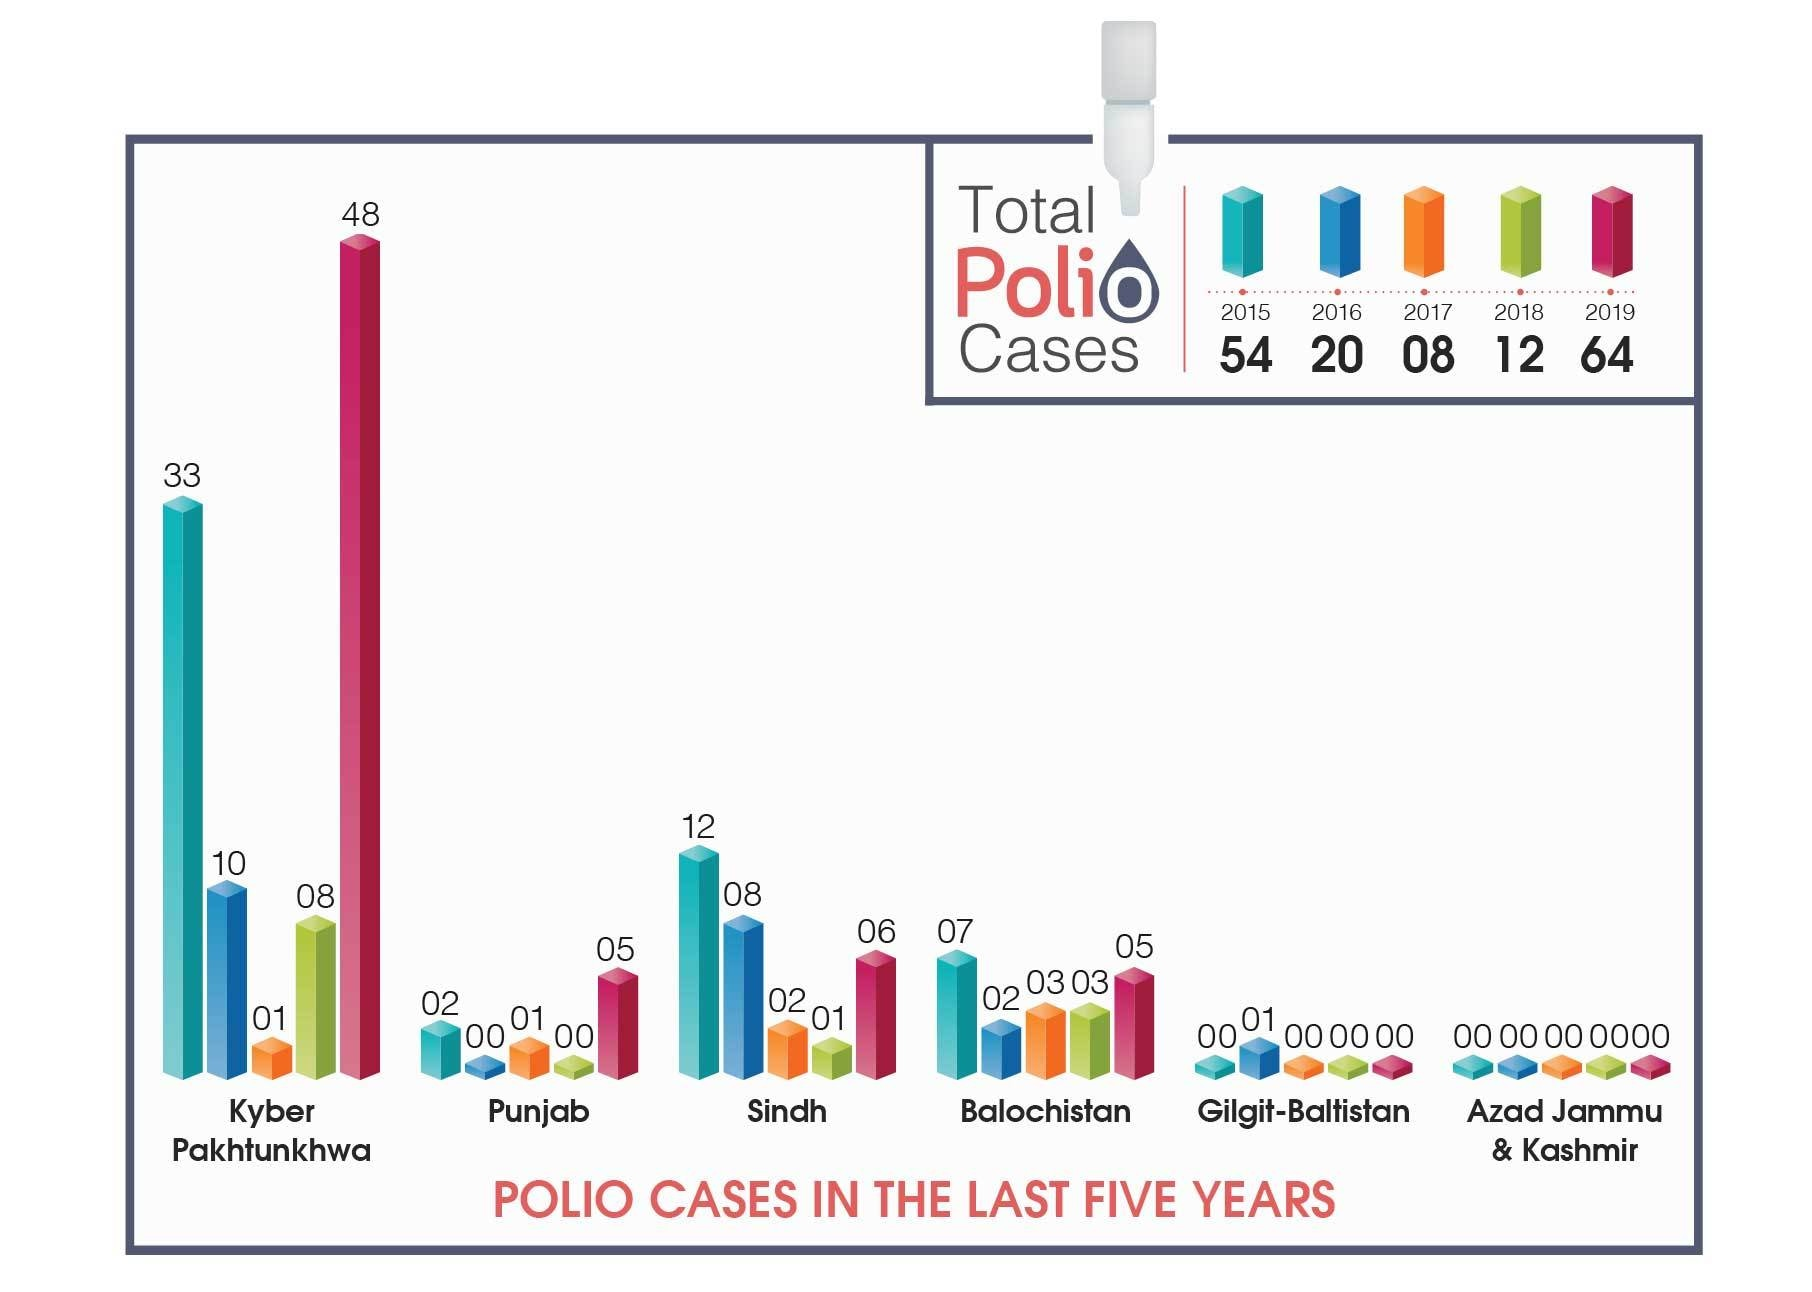 Polio cases reported from across Pakistan in the last five years.